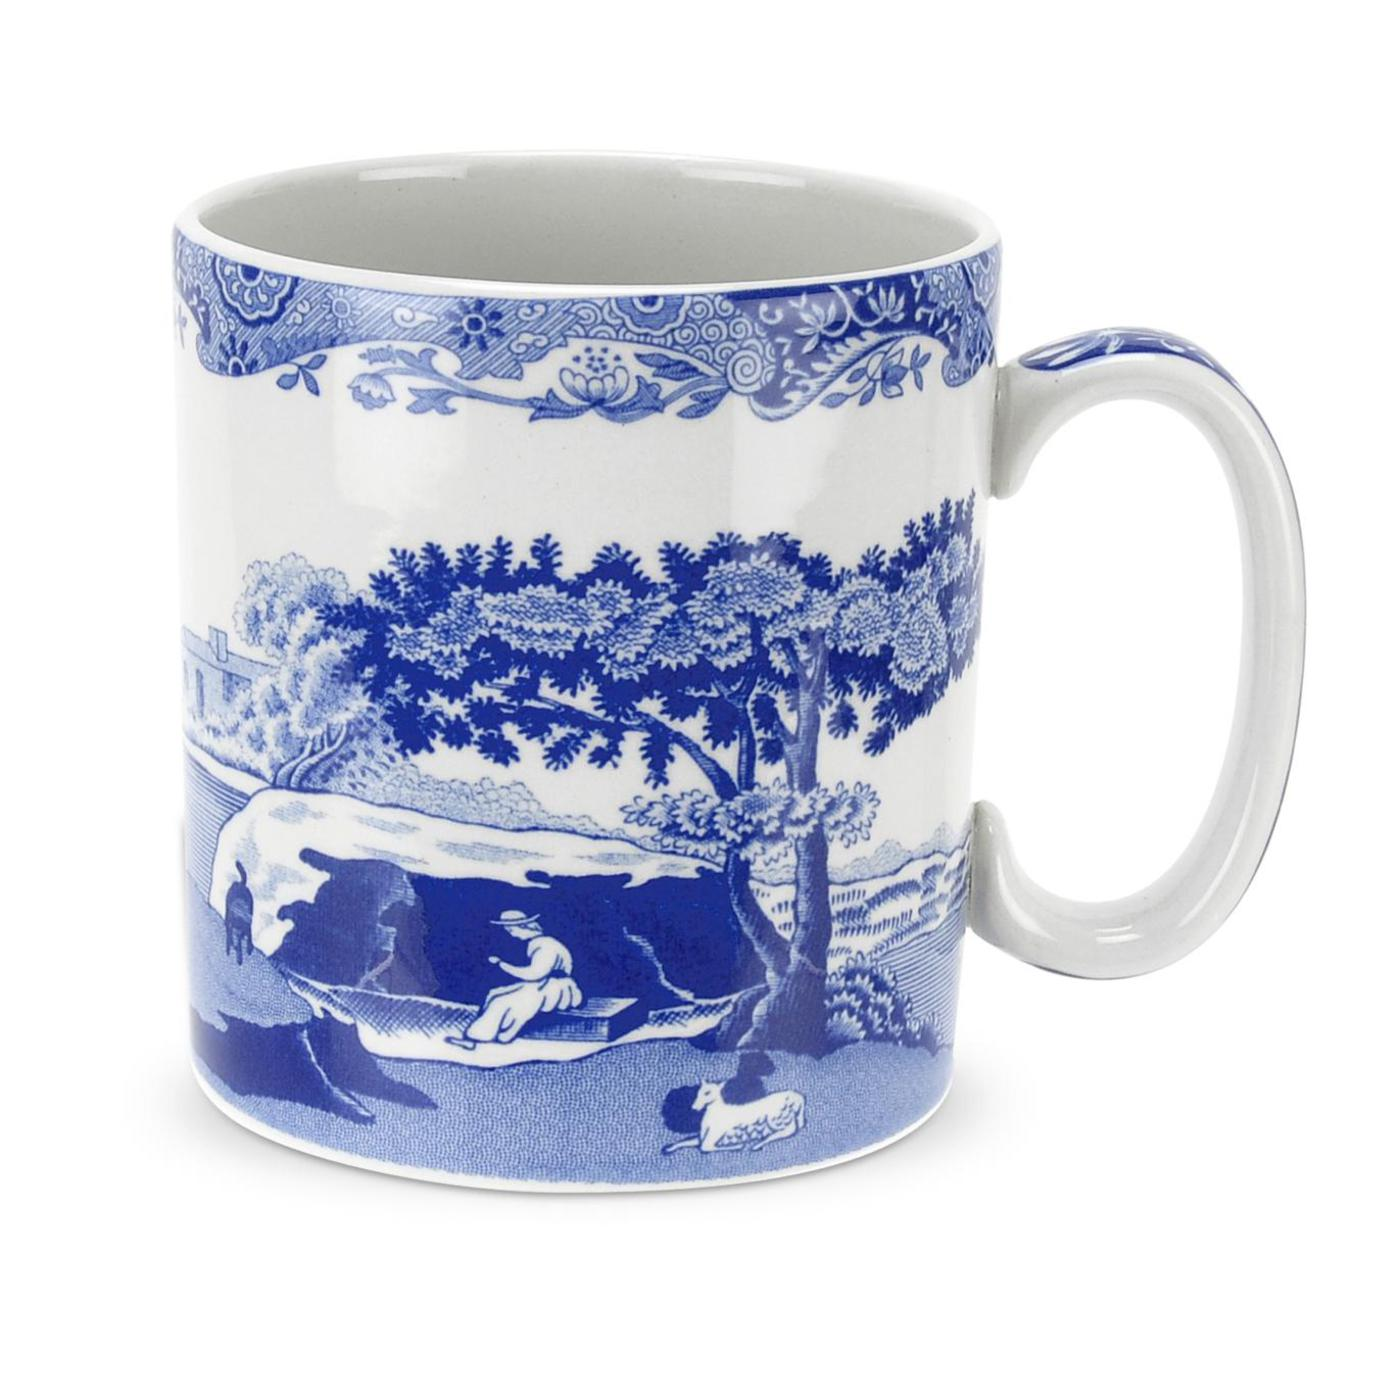 Spode Blue Italian Set of 4 9 oz Mugs image number 0